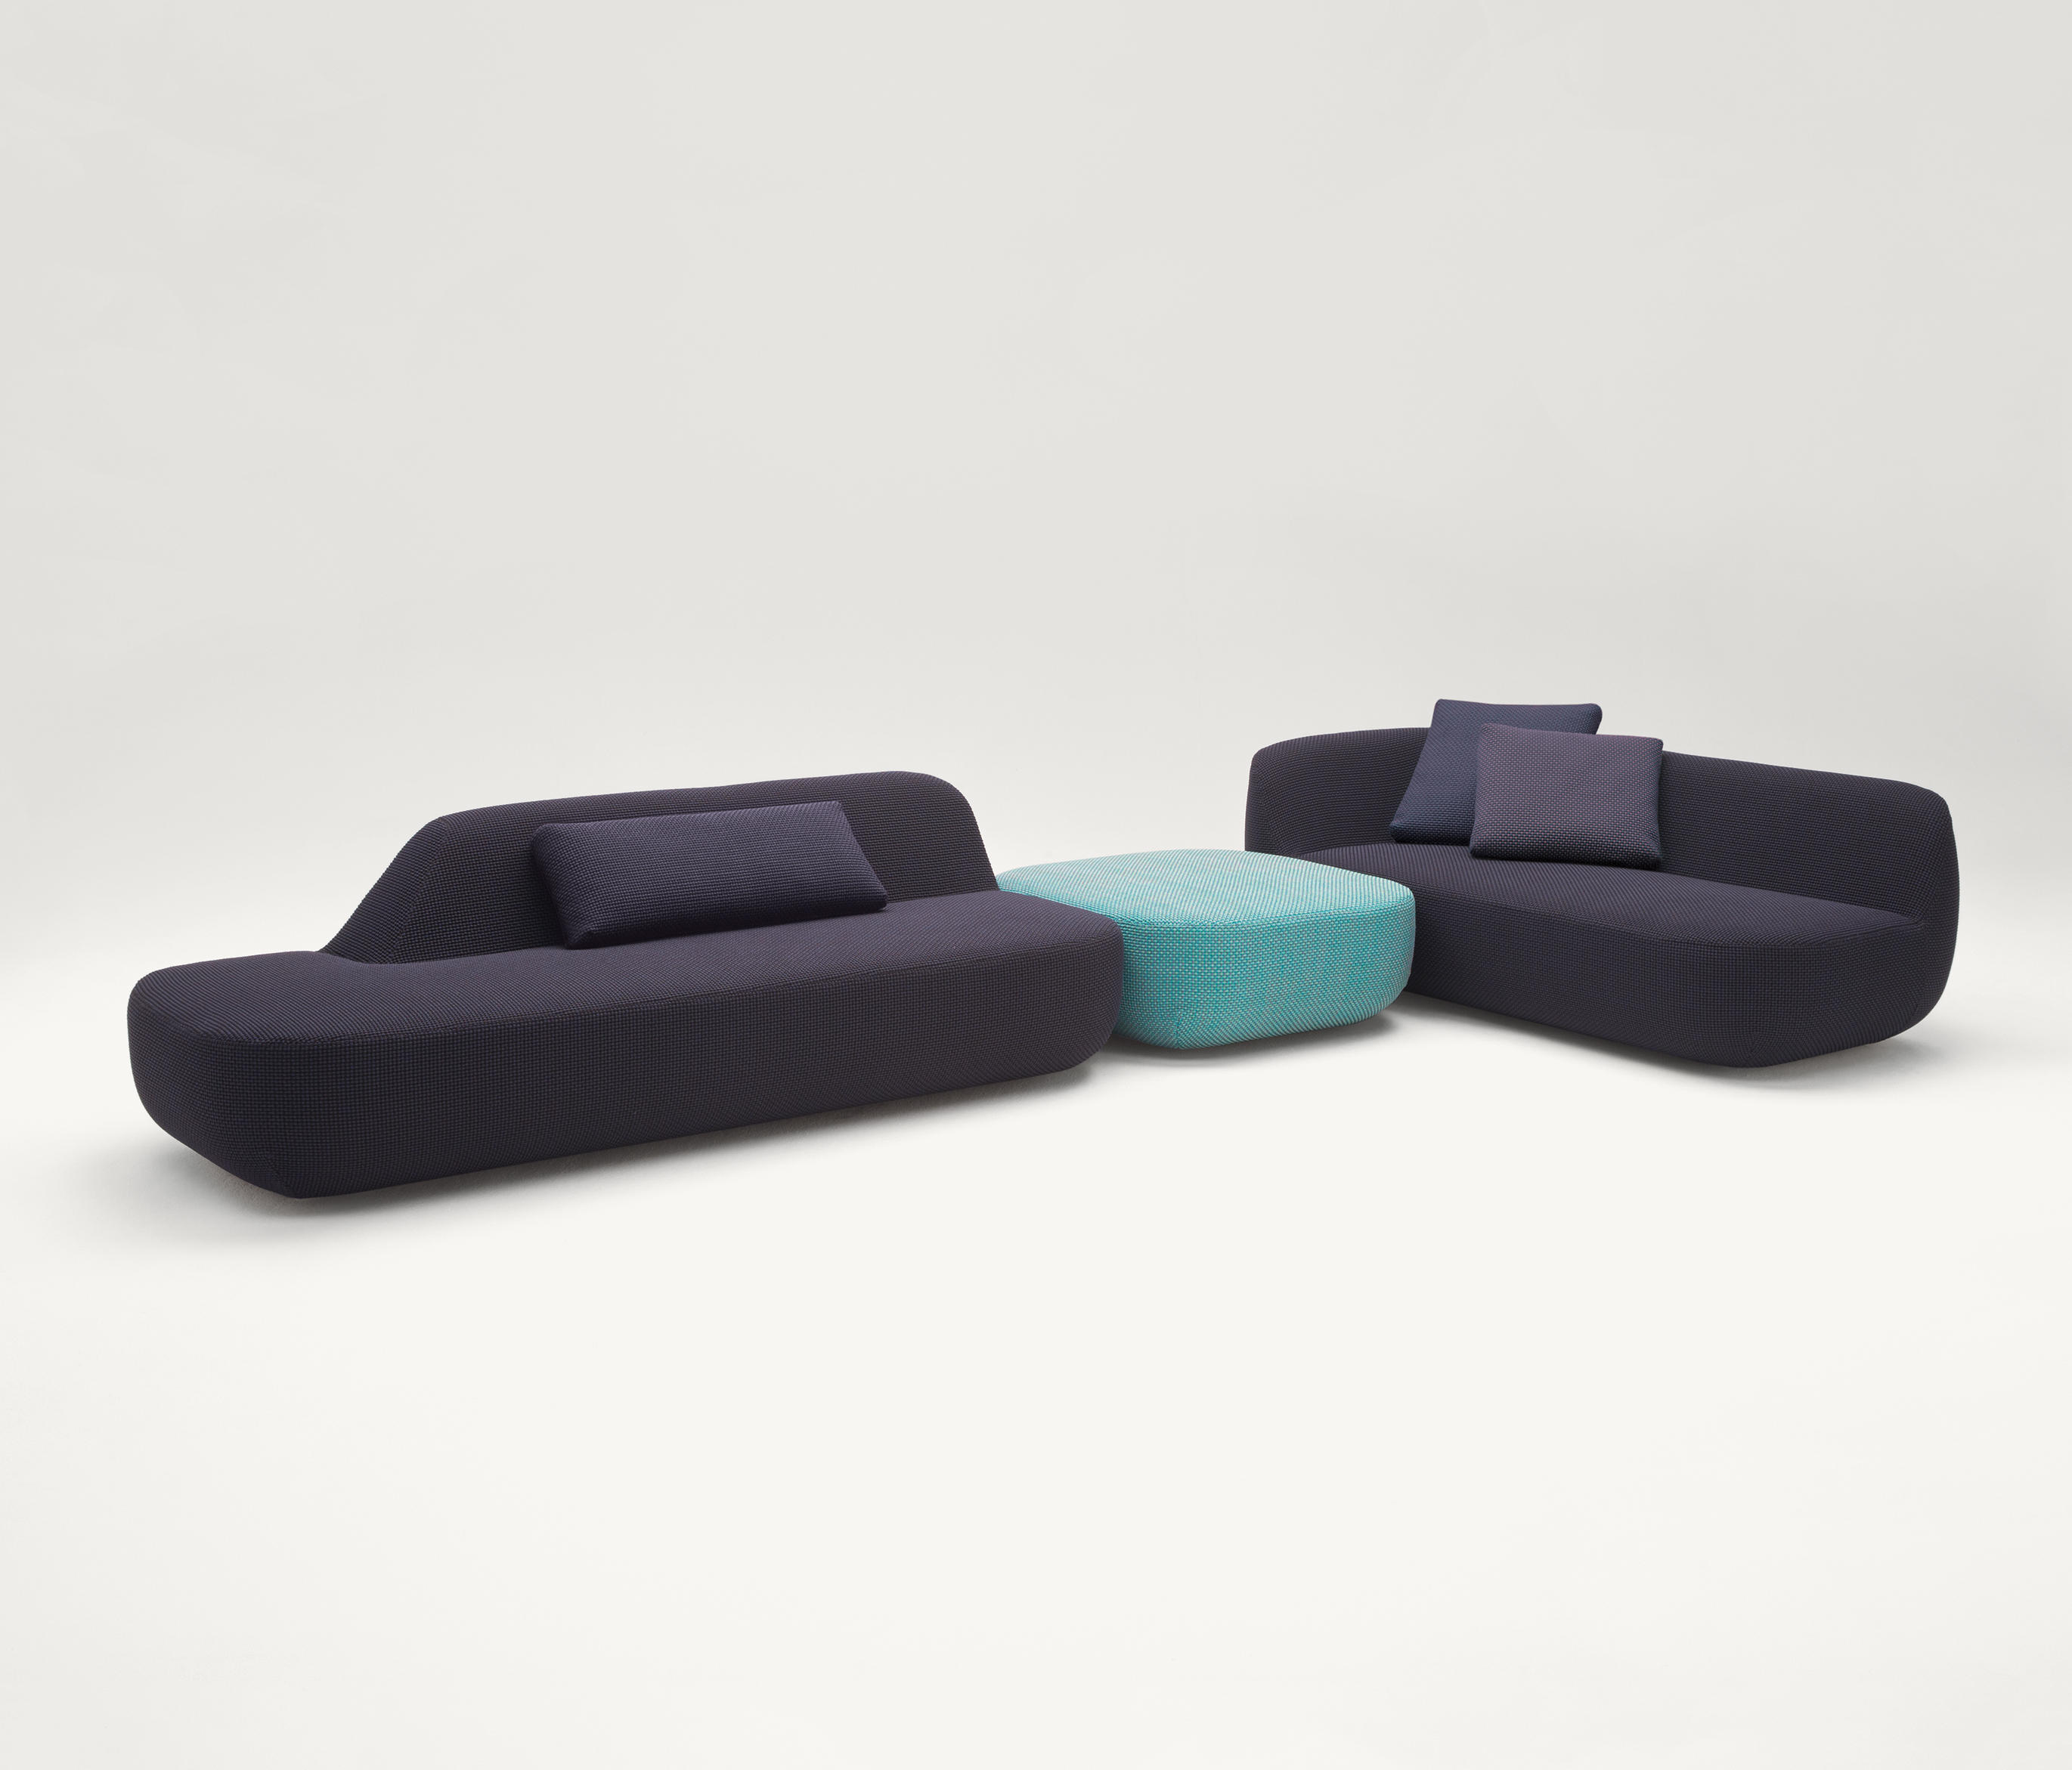 UPTOWN - Sofas from Paola Lenti | Architonic